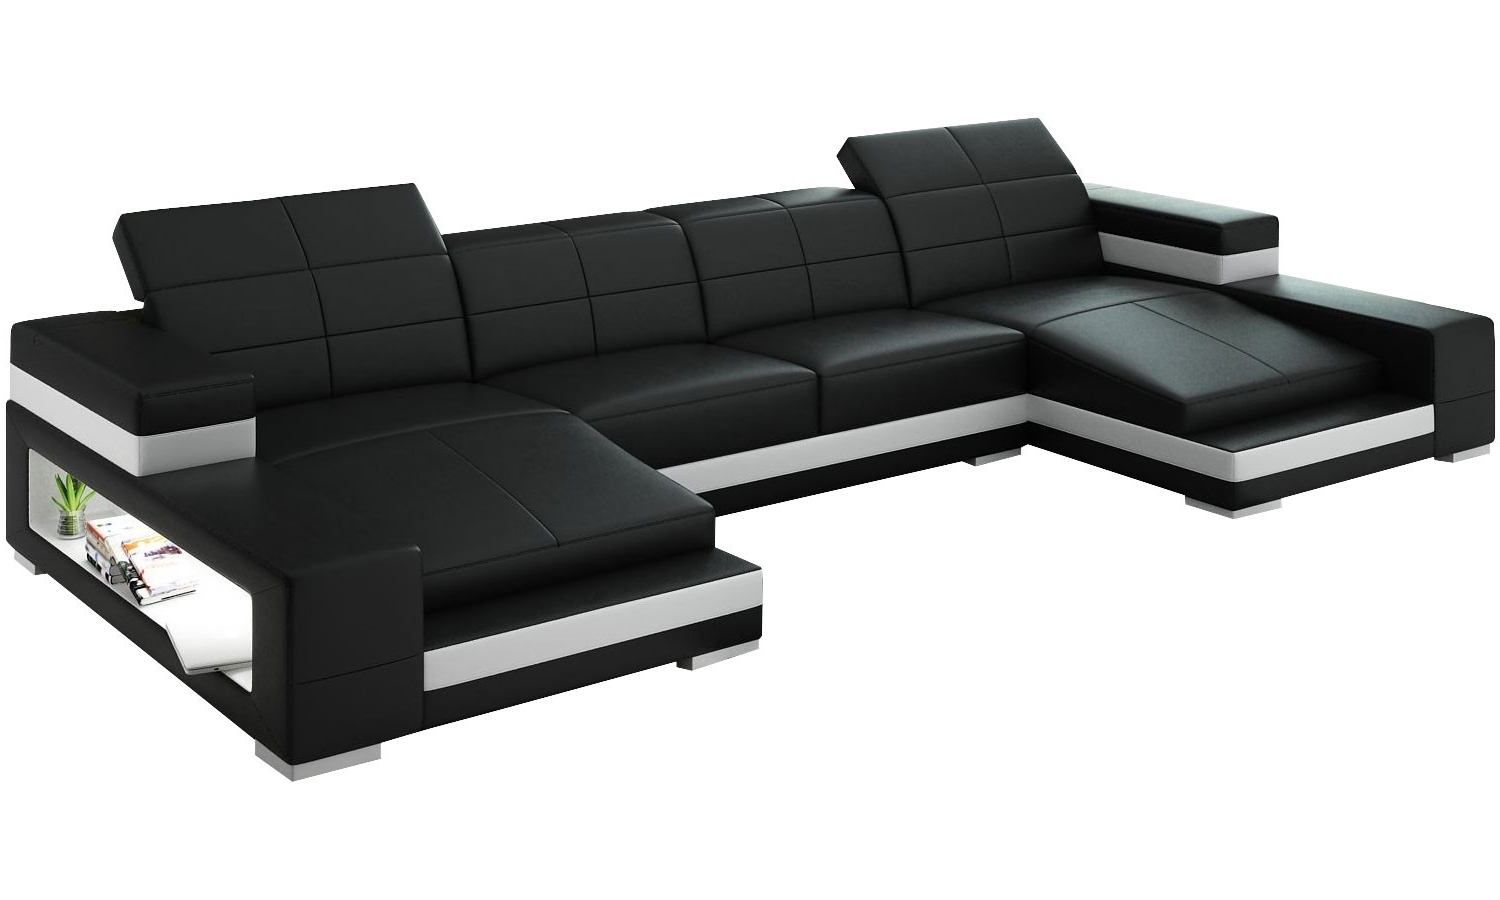 Double Chaise Sectional Sofa – Cleanupflorida With Regard To Newest Customizable Sectional Sofas (Gallery 18 of 20)